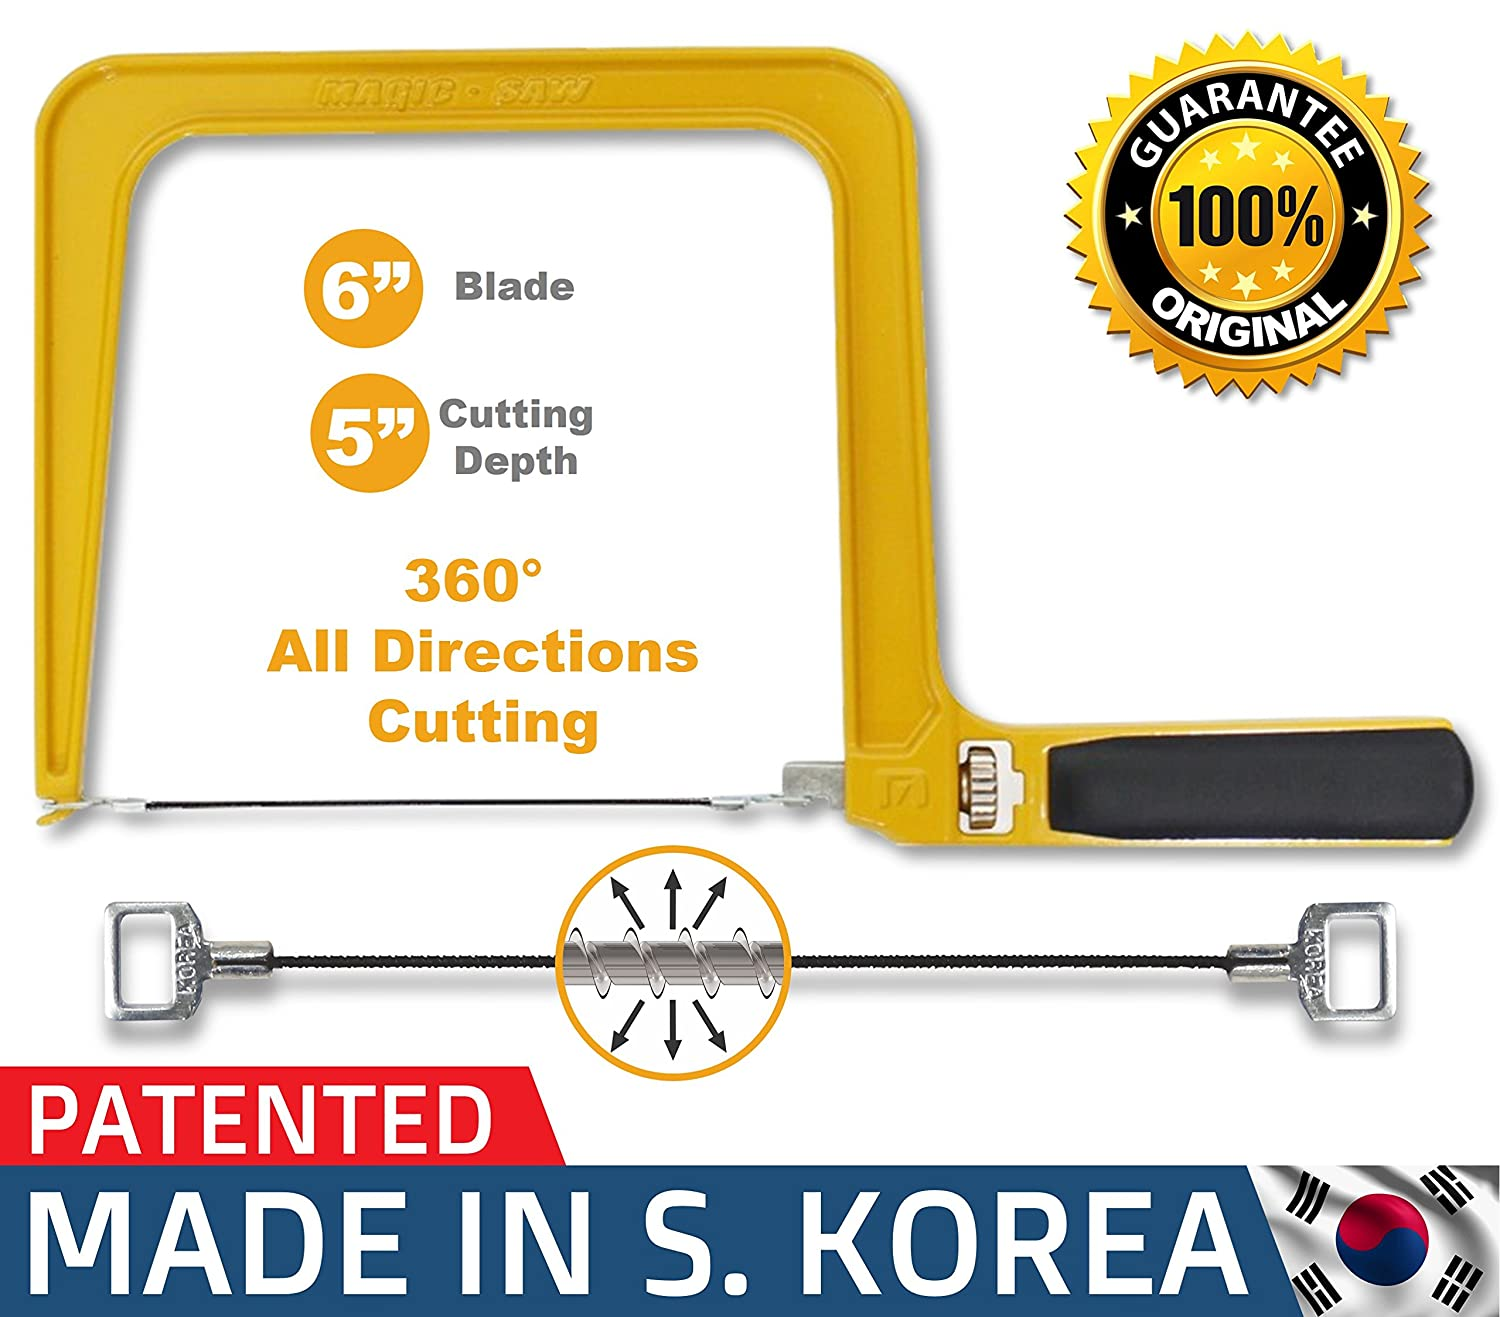 Amazing Tools Up to 1 ¾†Multi-function wrench Universal Adjustable auto-ratcheting works as reversible ratchet pop socket combination & pipe monkey spanner sae crescent nut gear-wrench se